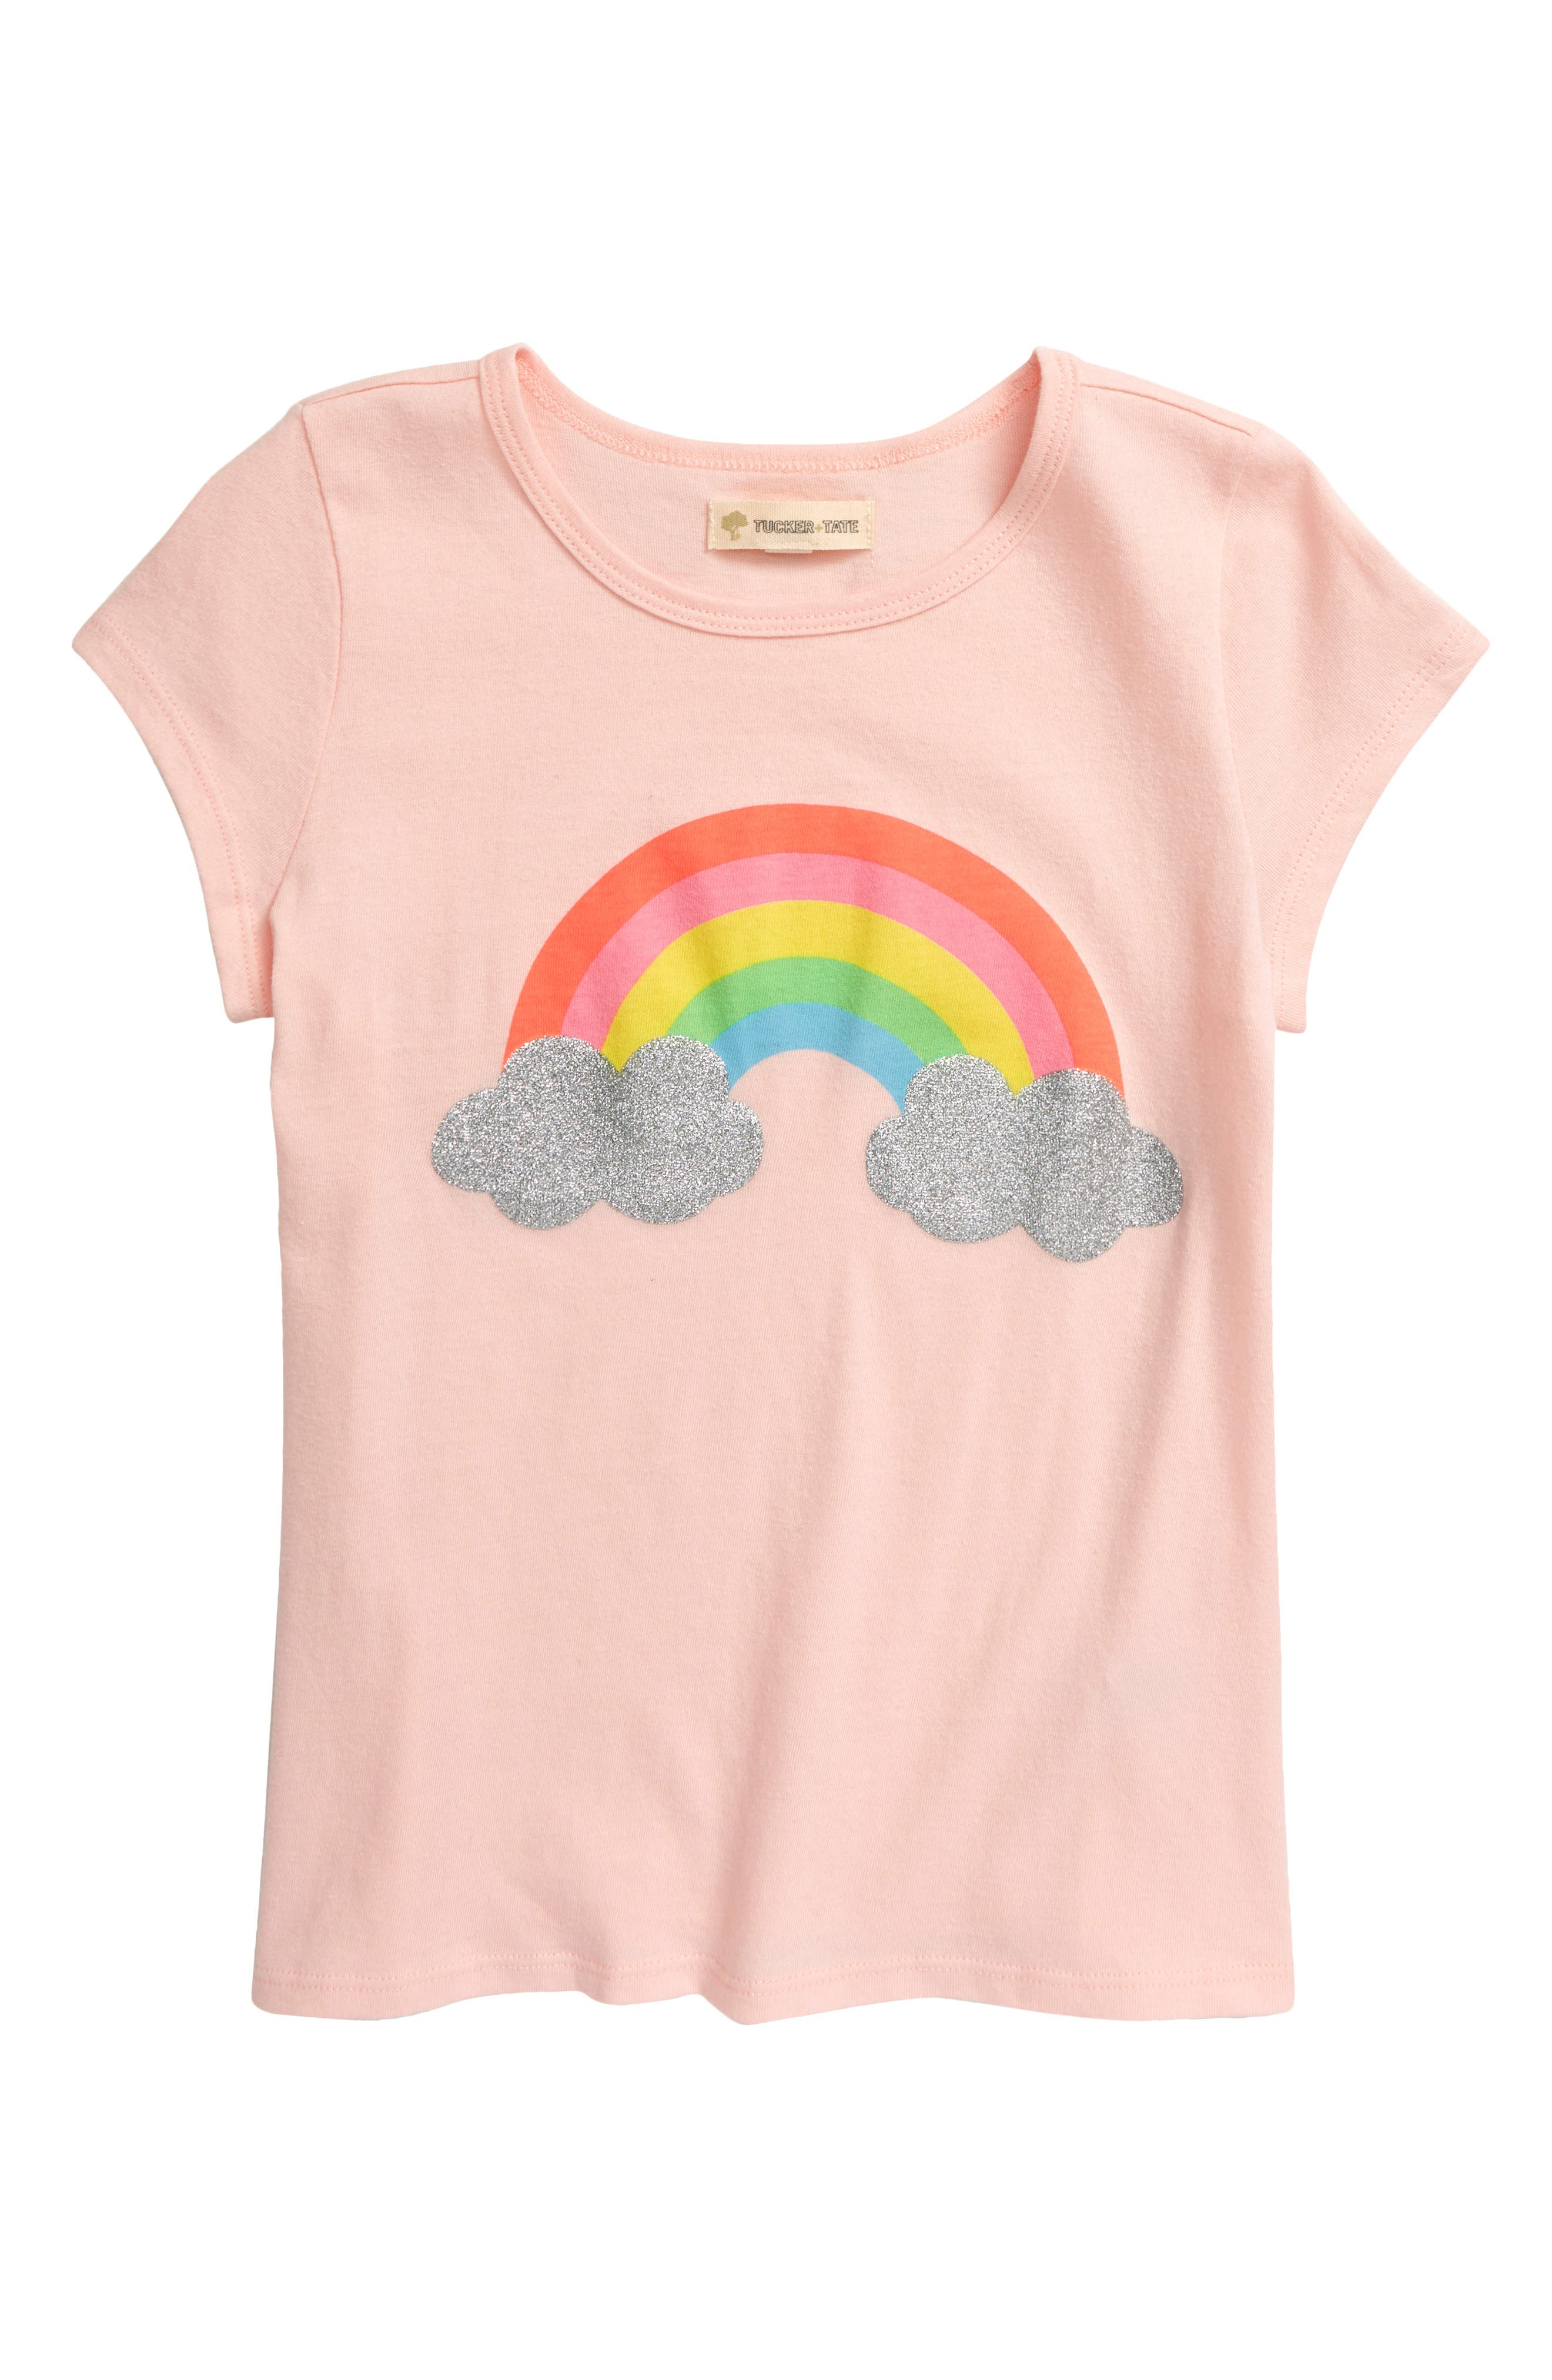 Sparkly clouds punctuate the cheerful rainbow on this soft cotton tee that\\\'s meant for your magical girl. Style Name: Tucker + Tate Kids\\\' Glitter Pop Graphic Tee (Toddler, Little Girl & Big Girl). Style Number: 6016729. Available in stores.